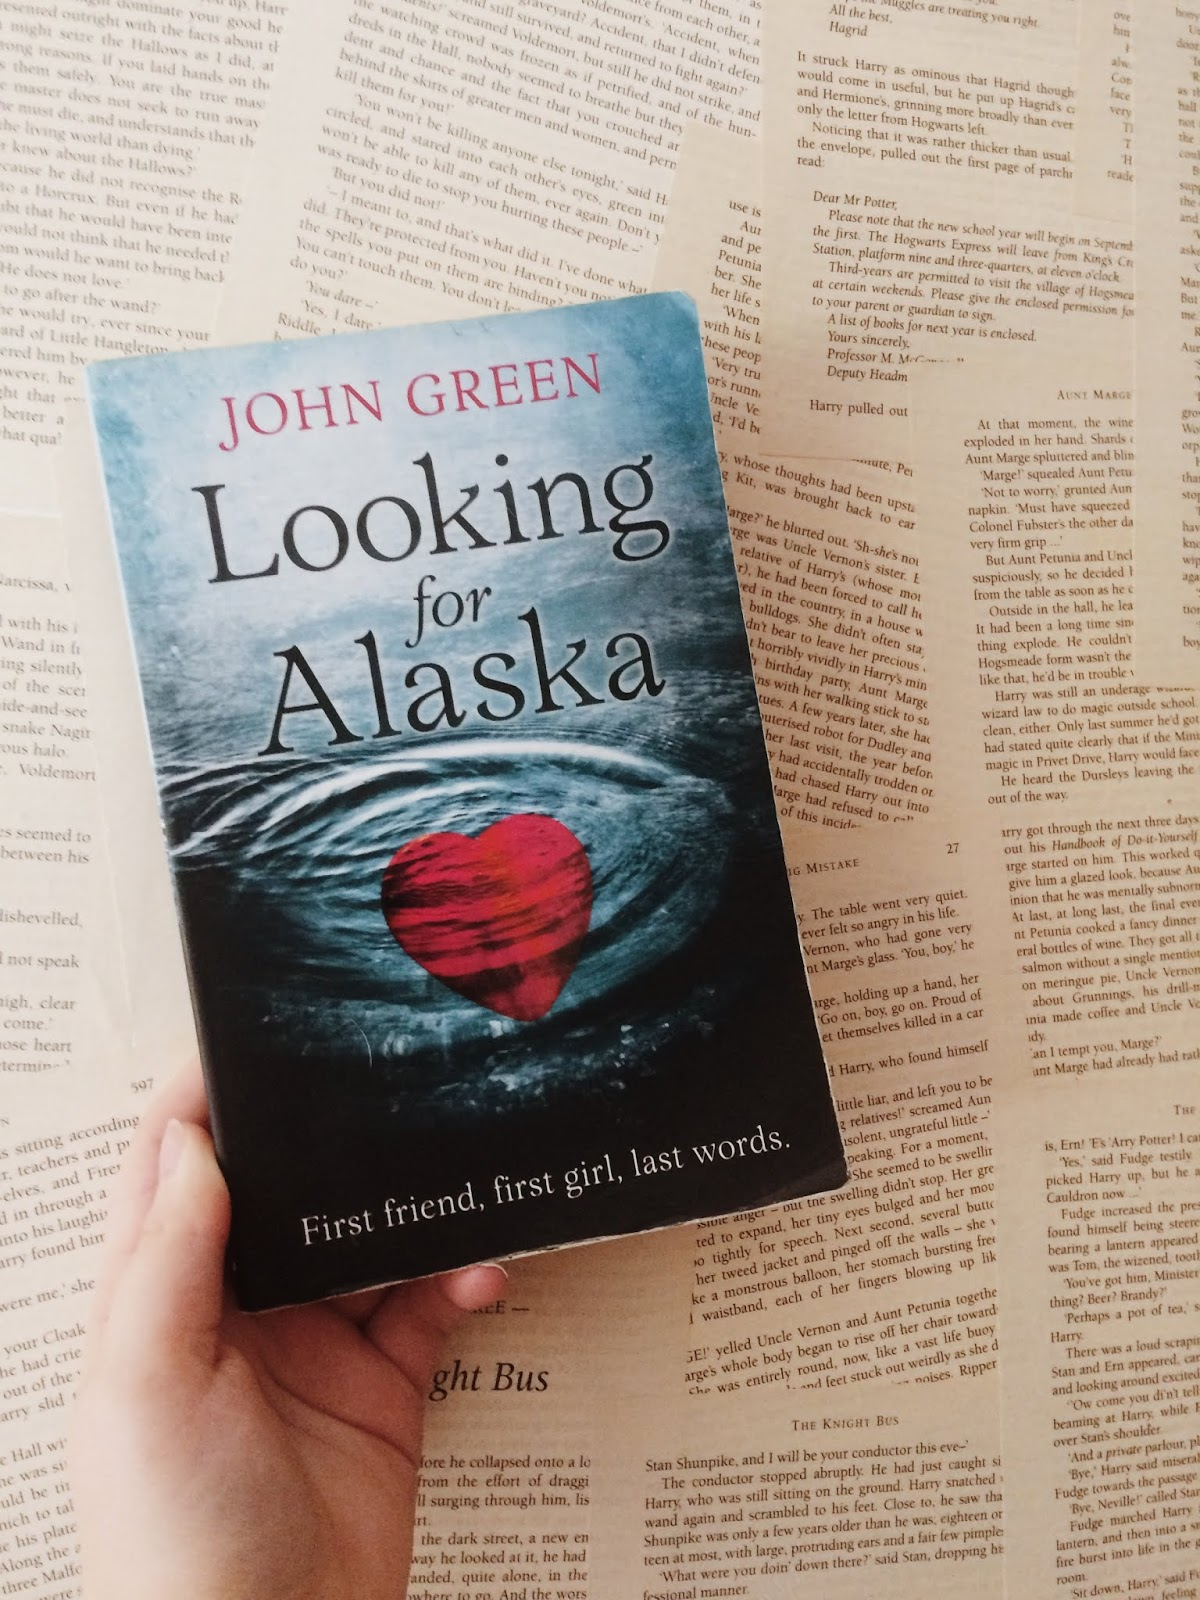 Photo of the book Looking for Alaska by John Green, held up over a background of loose pages from book